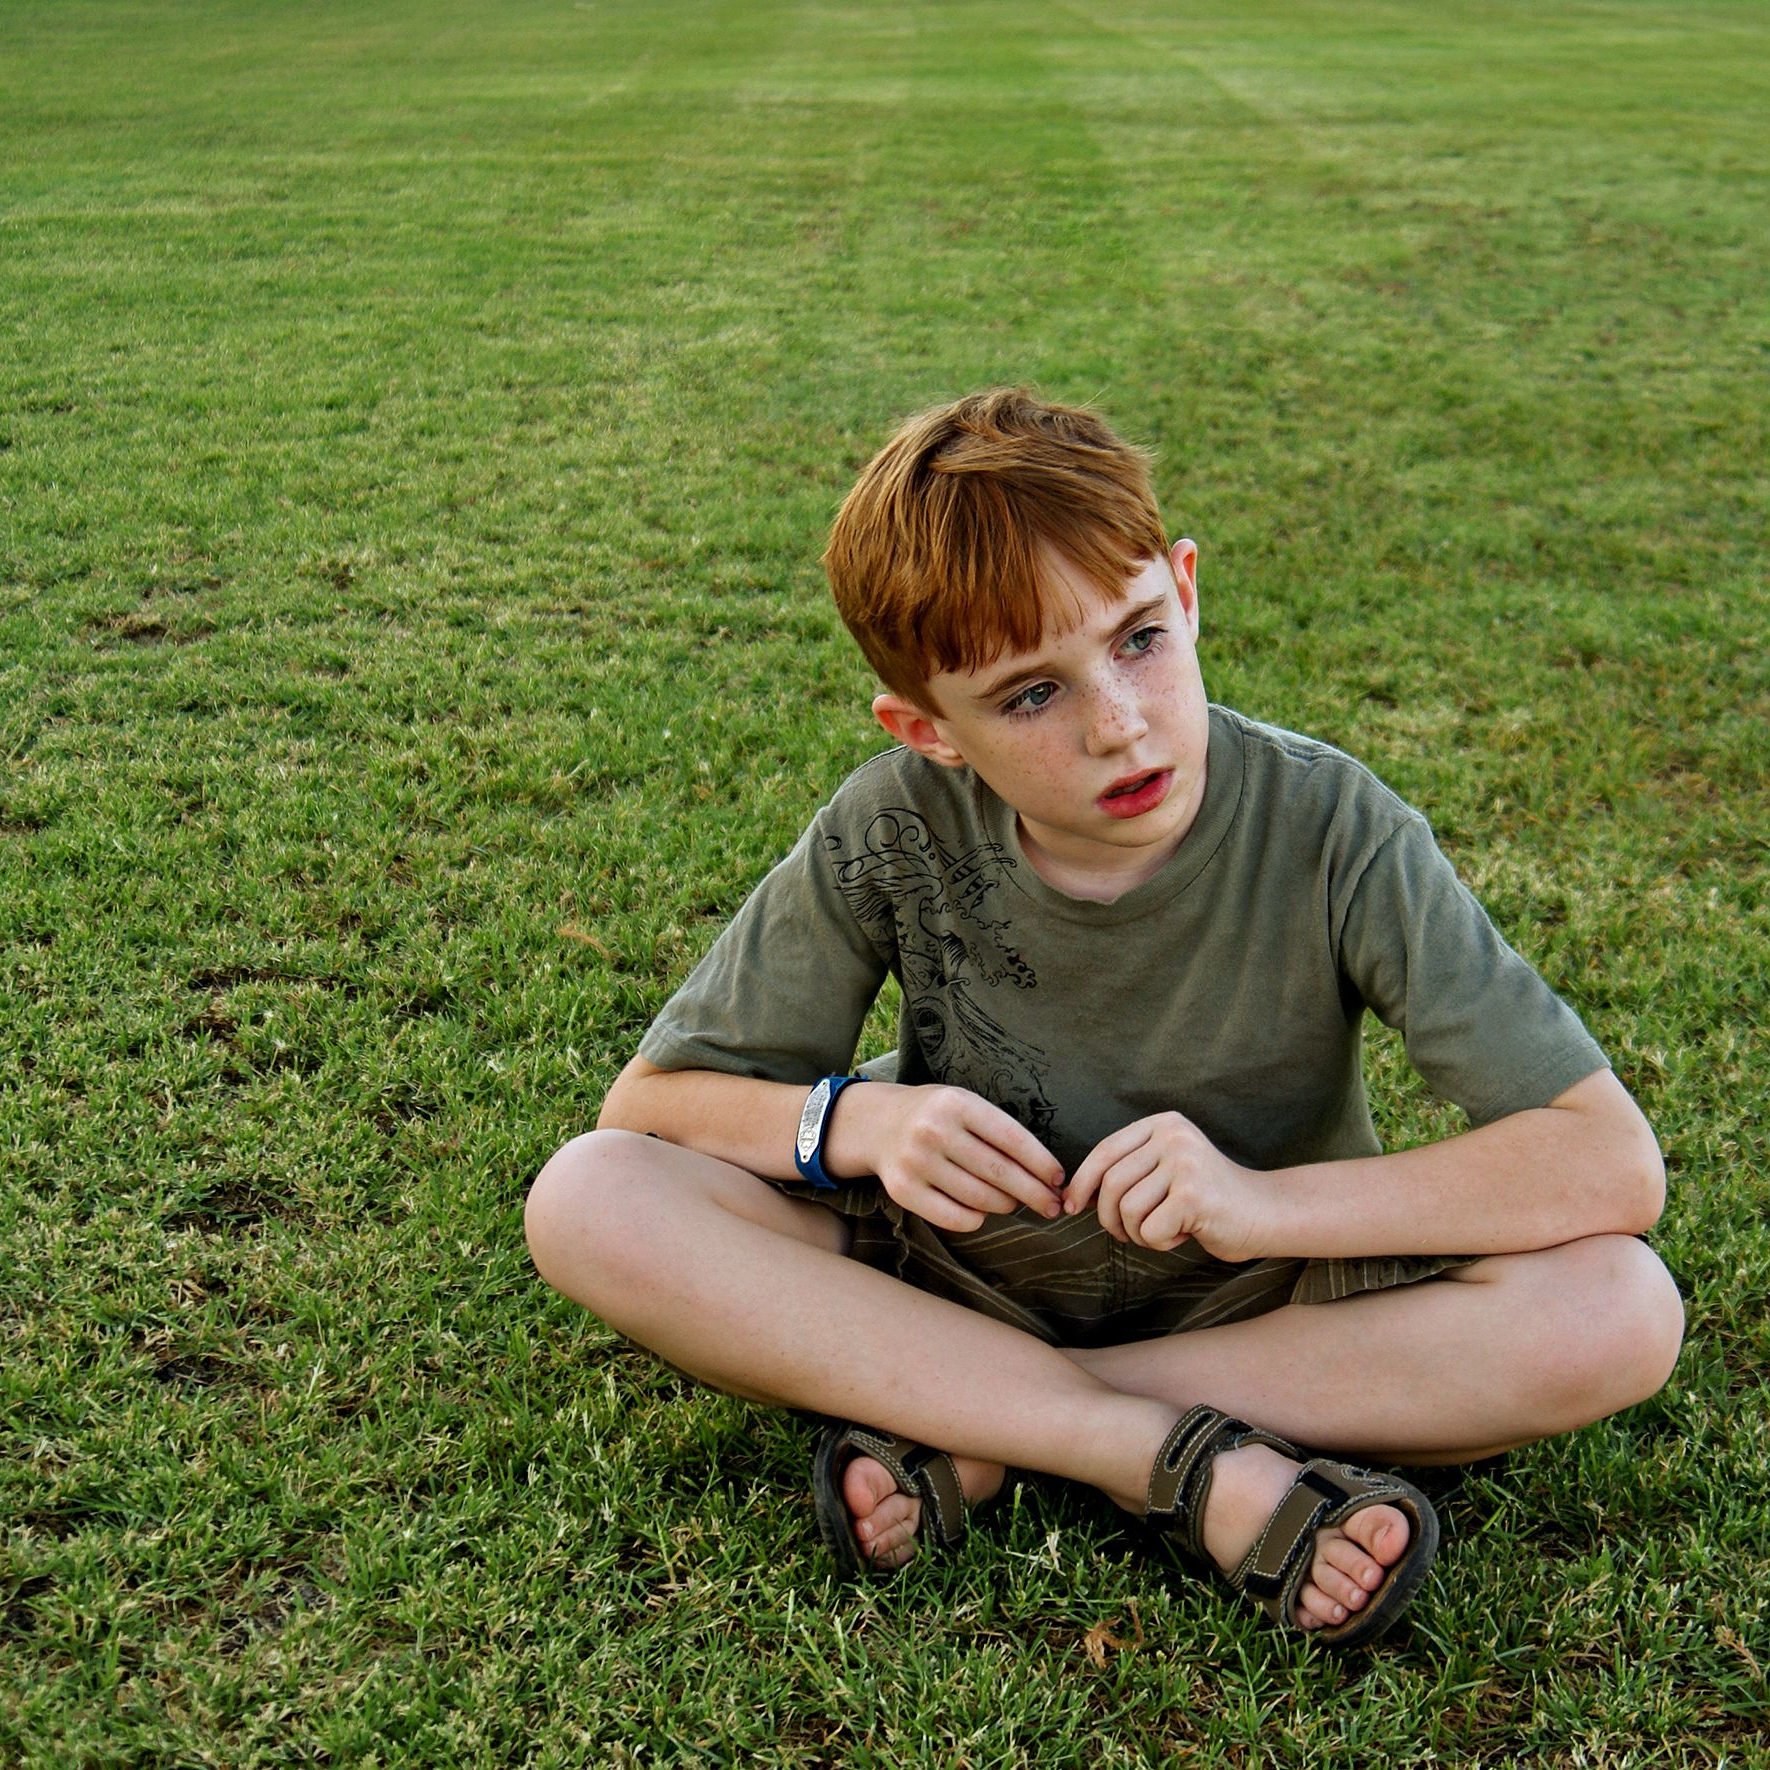 An 8-year-old boy sits on a grassy field and looks off out of frame